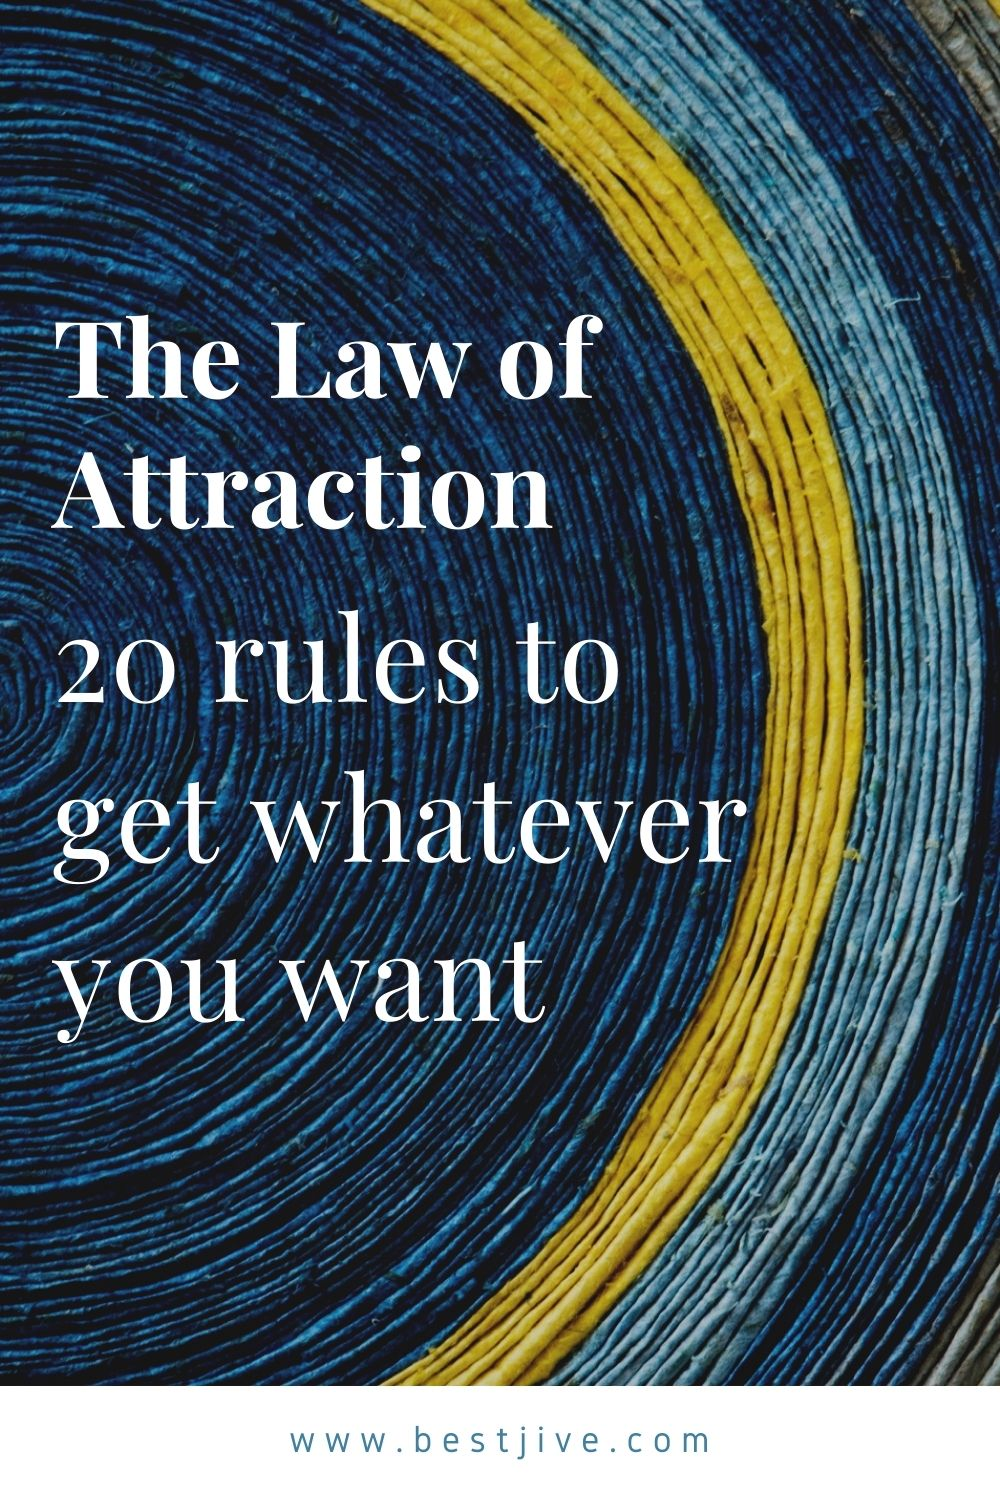 The Law of Attraction: 20 rules to get whatever you want